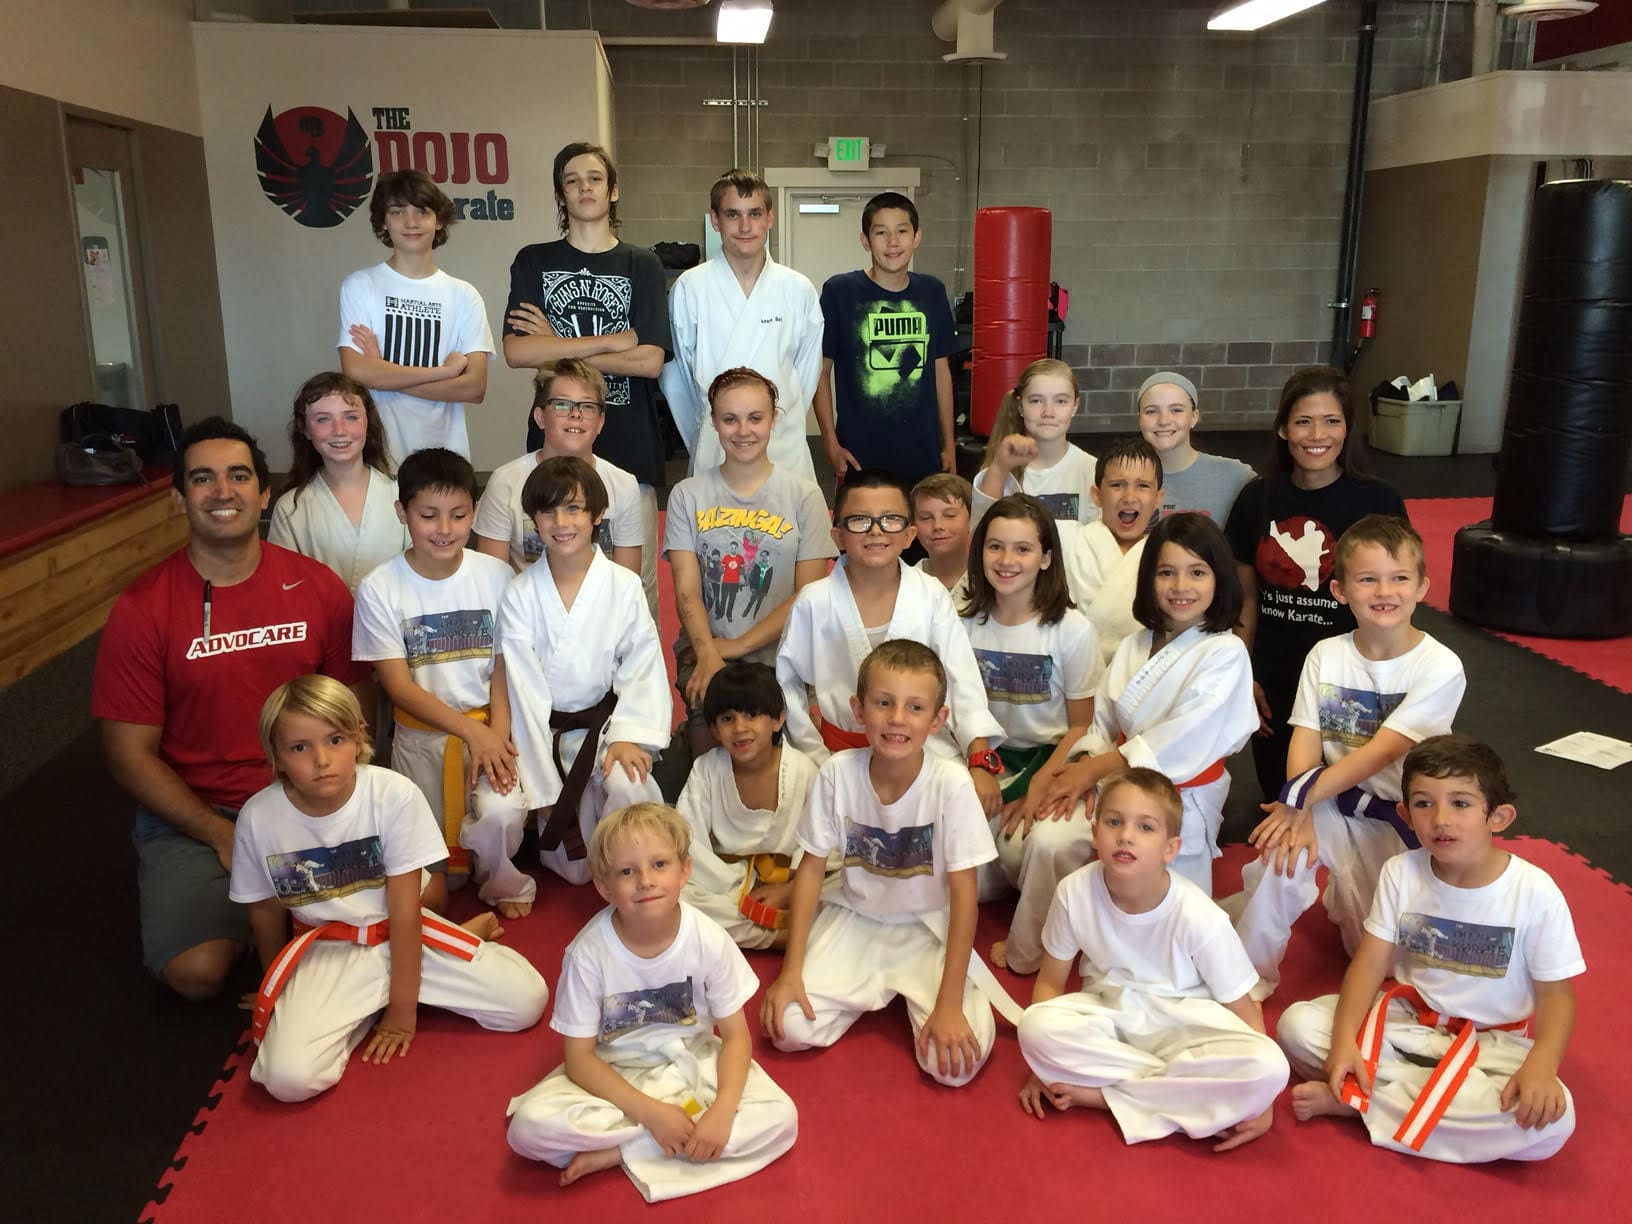 Teaching Excellence through Karate. Call Today to Learn More about Our Summer Camps!